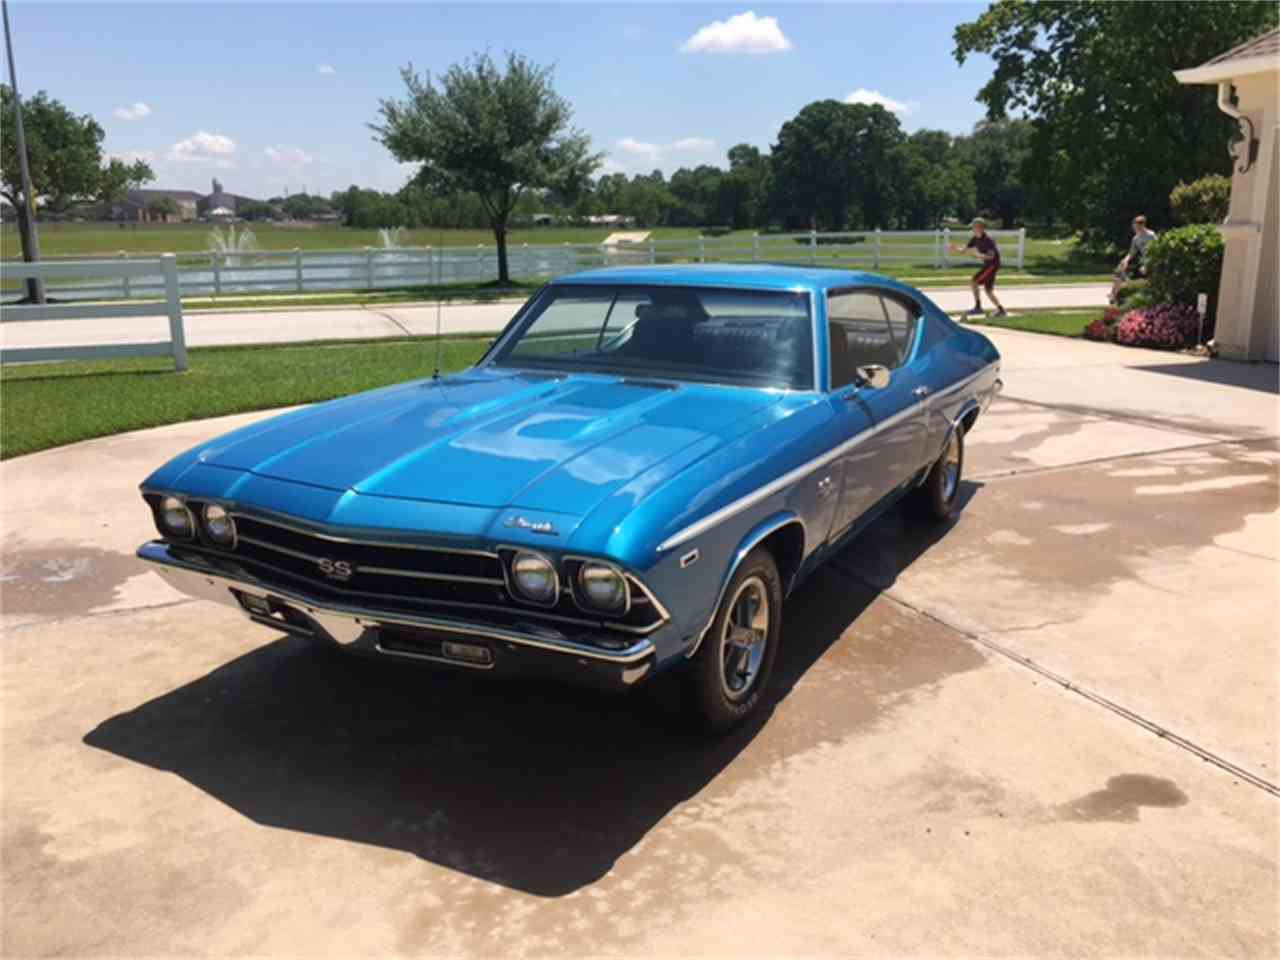 1969 chevrolet chevelle ss for sale cc 999212 - 69 chevelle ss 396 images ...